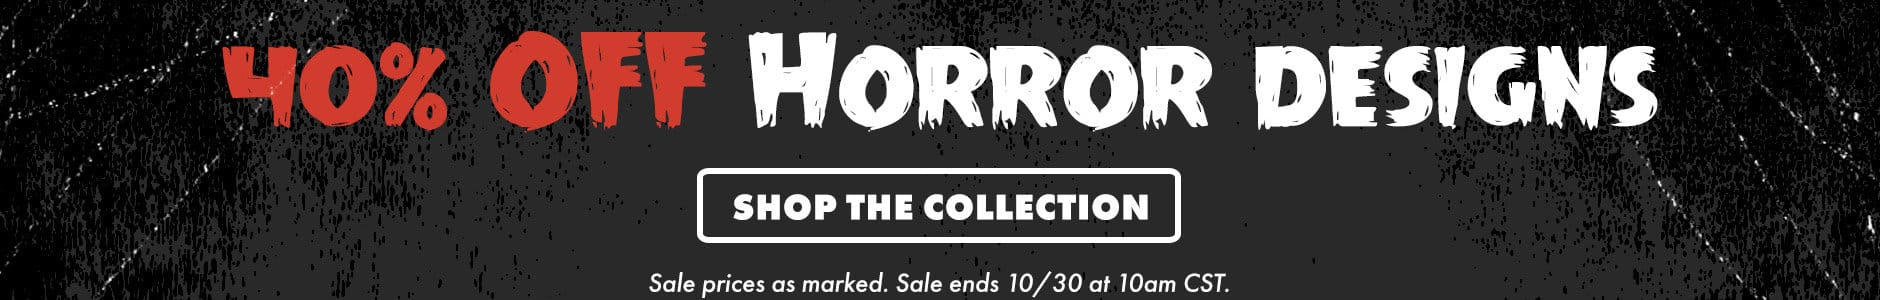 40% off horror designs. Shop the collection. Sale prices as marked. Sale ends 10/30 at 10am CST.